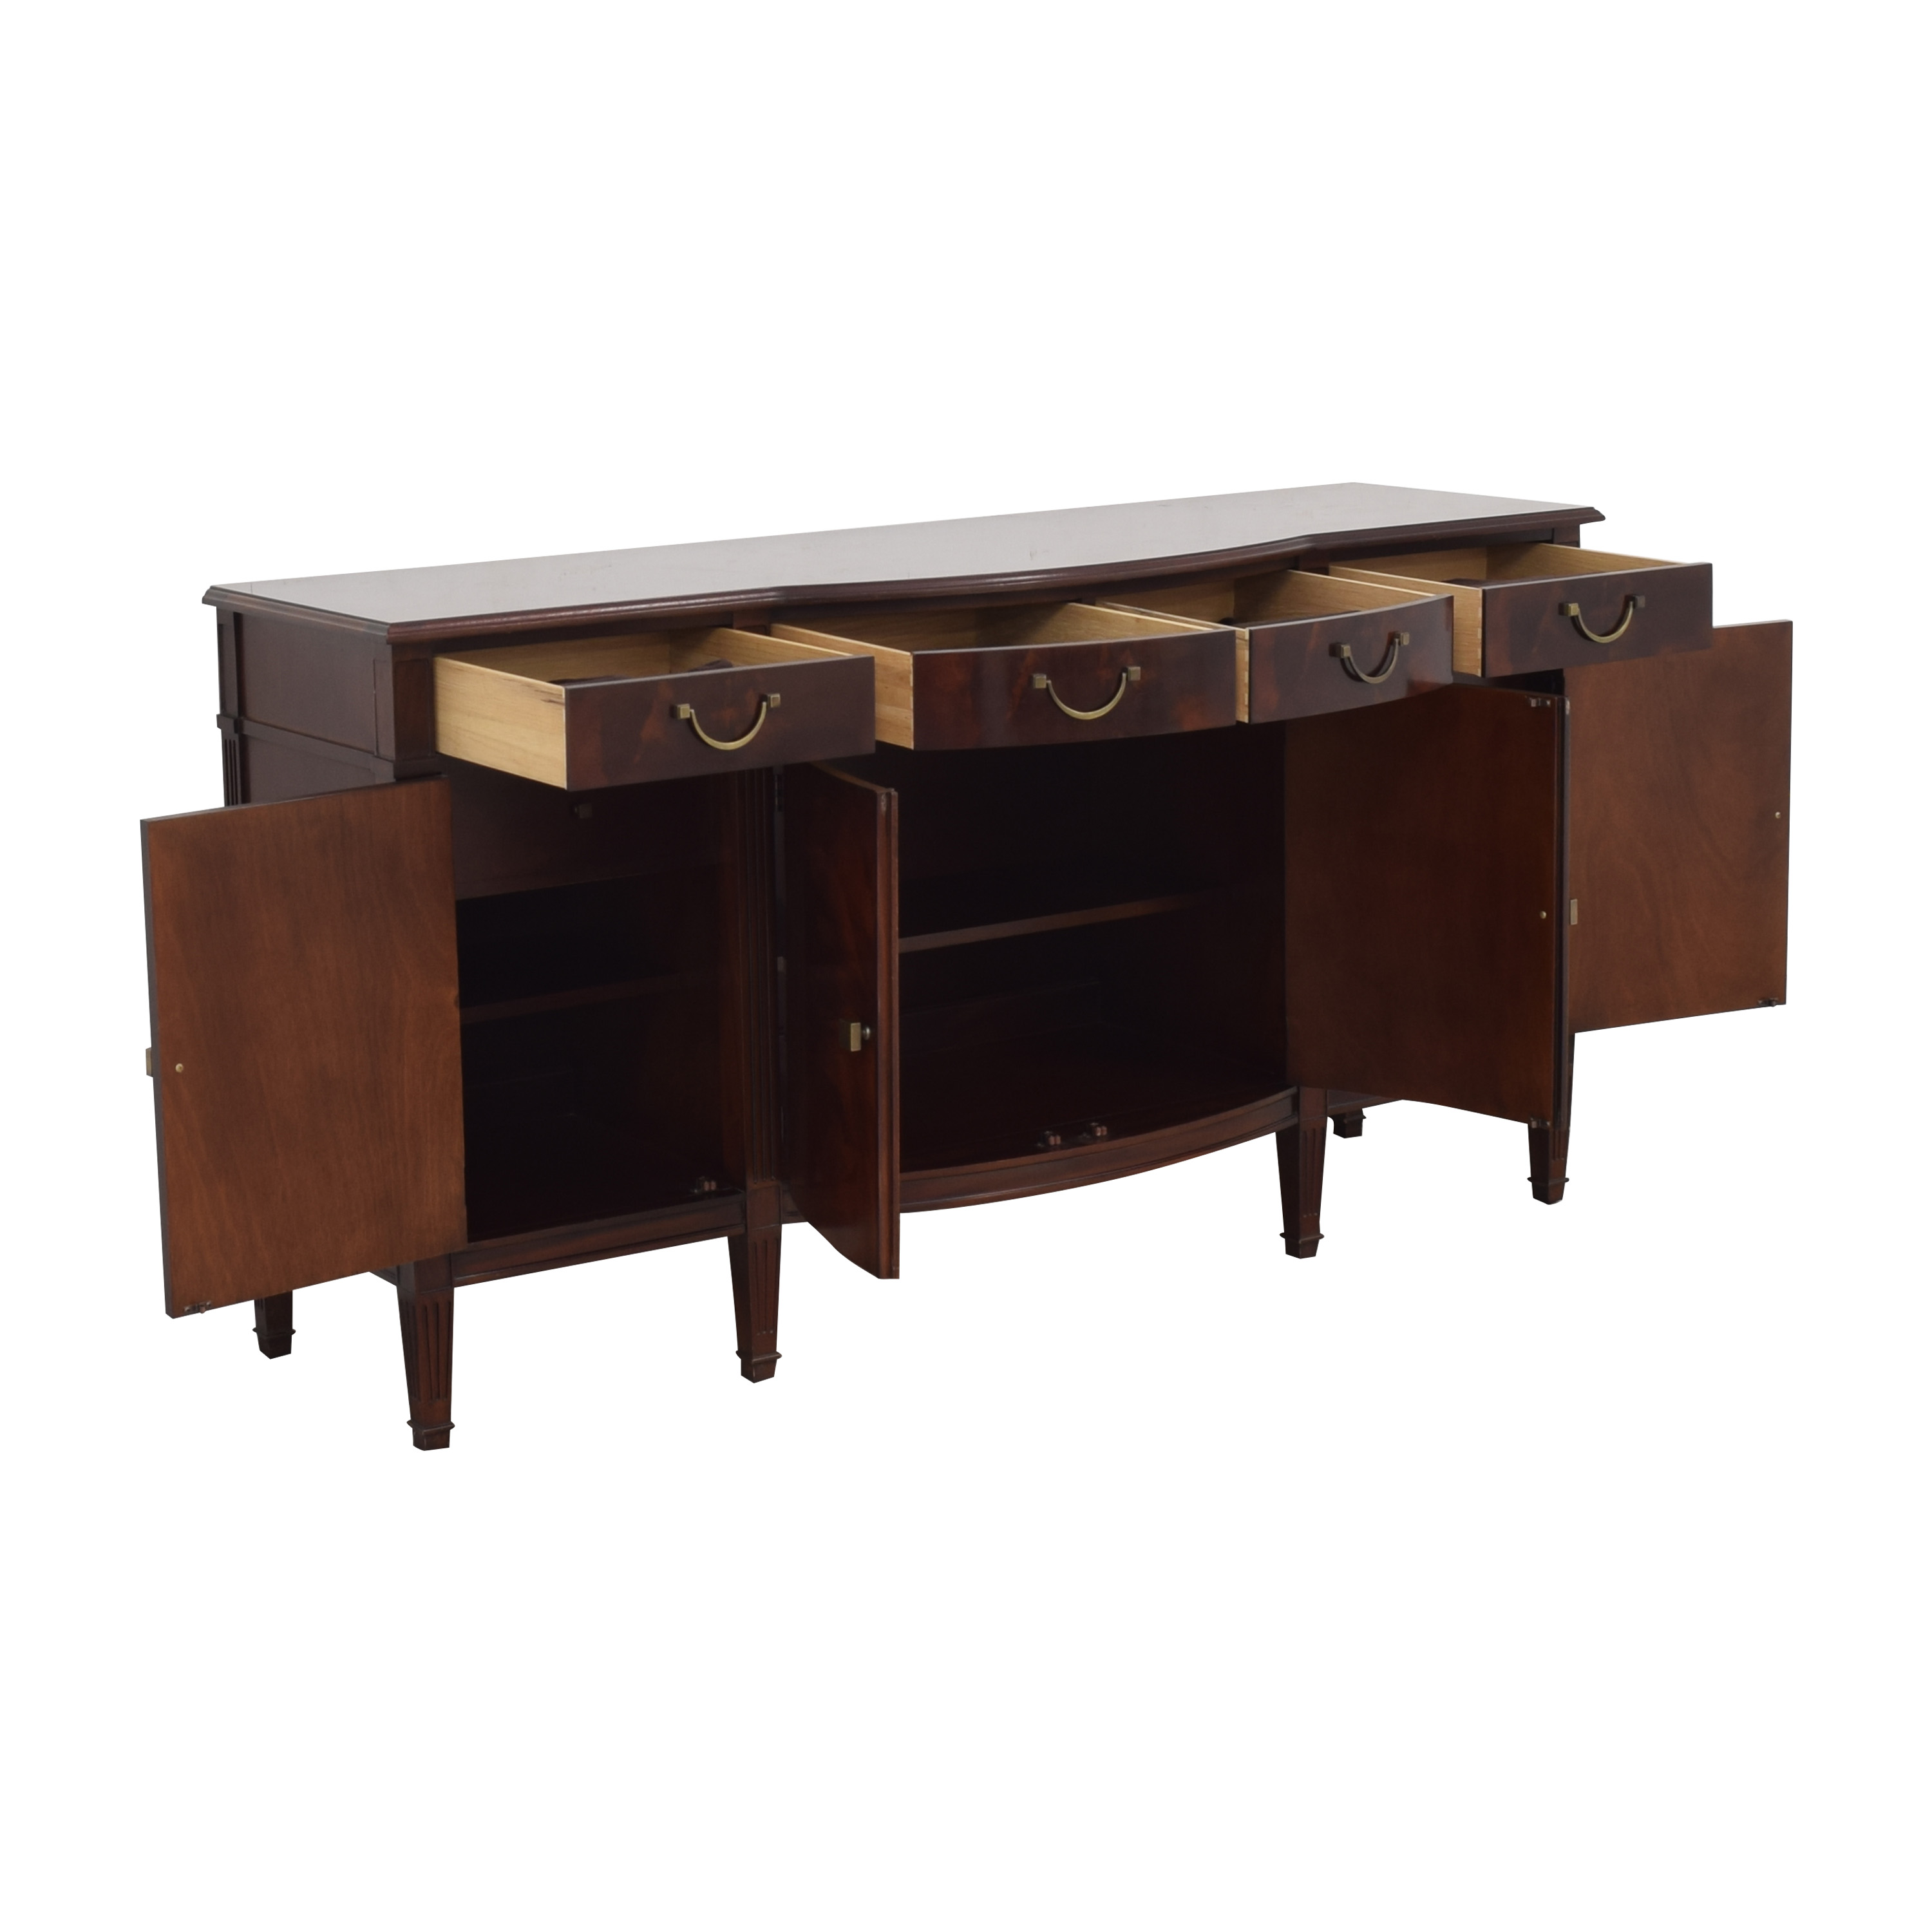 Hickory Chair Hickory Chair Buffet Sideboard by Mariette Himes Gomez used